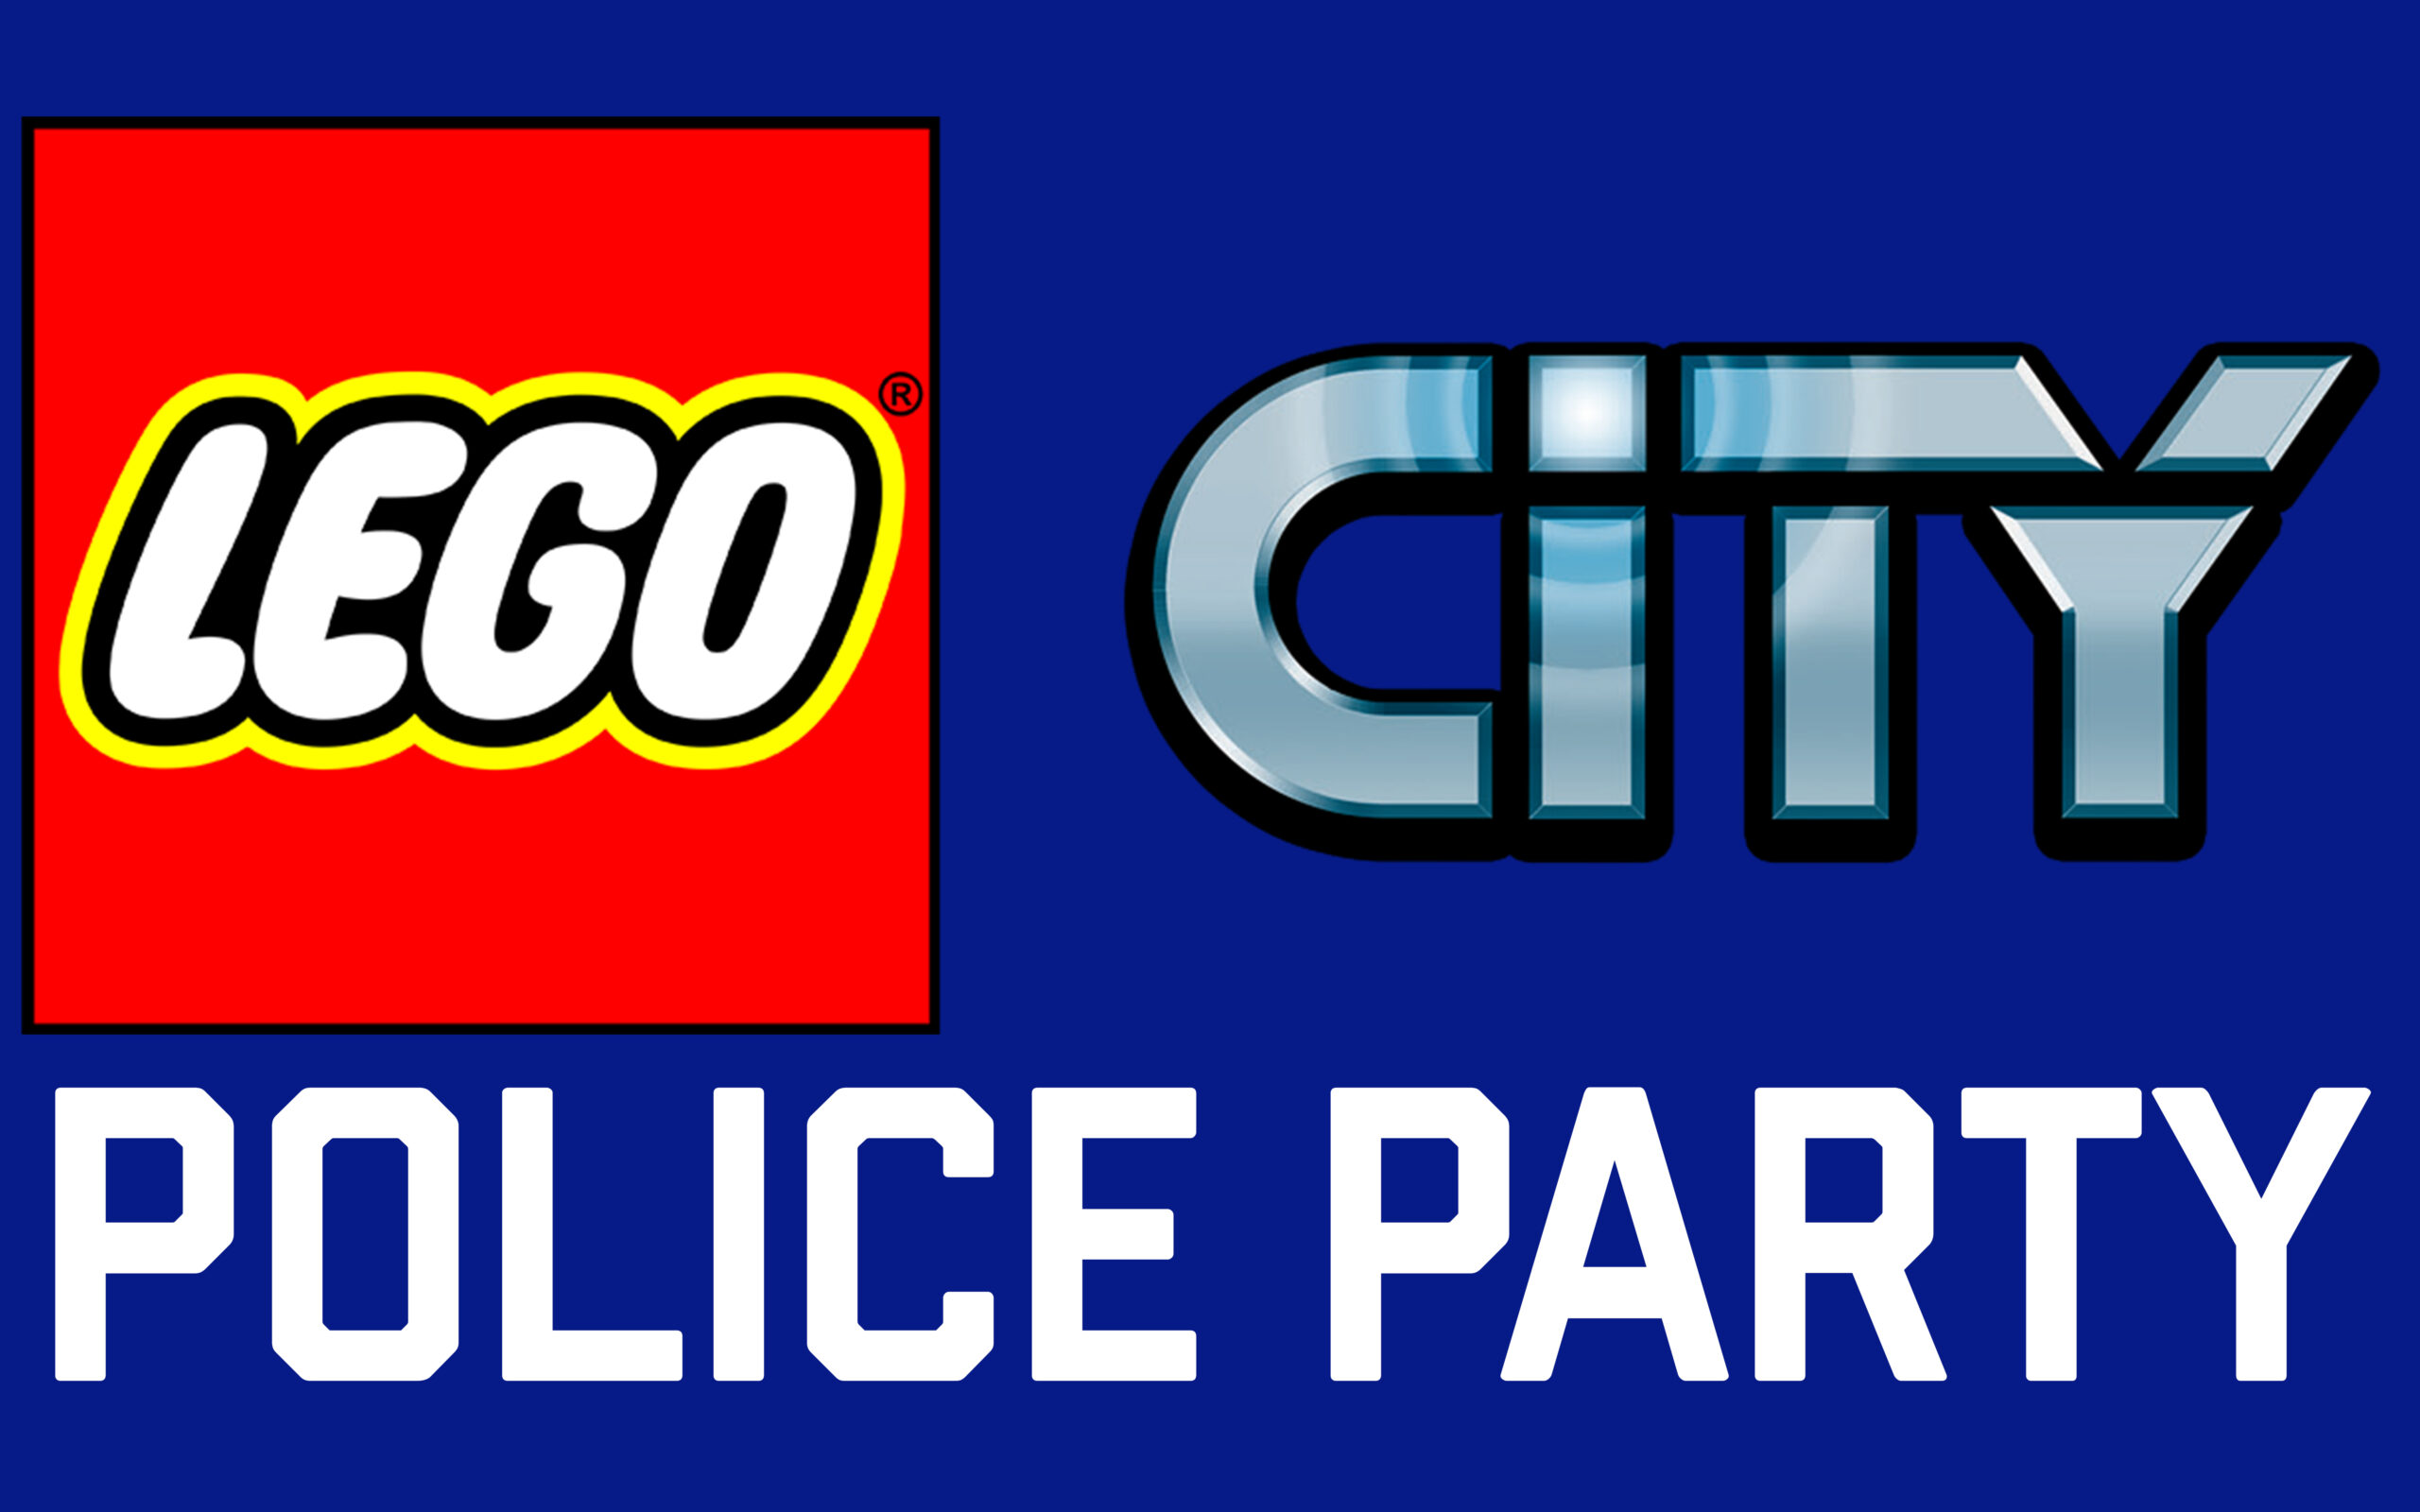 LEGO City Police Birthday Party